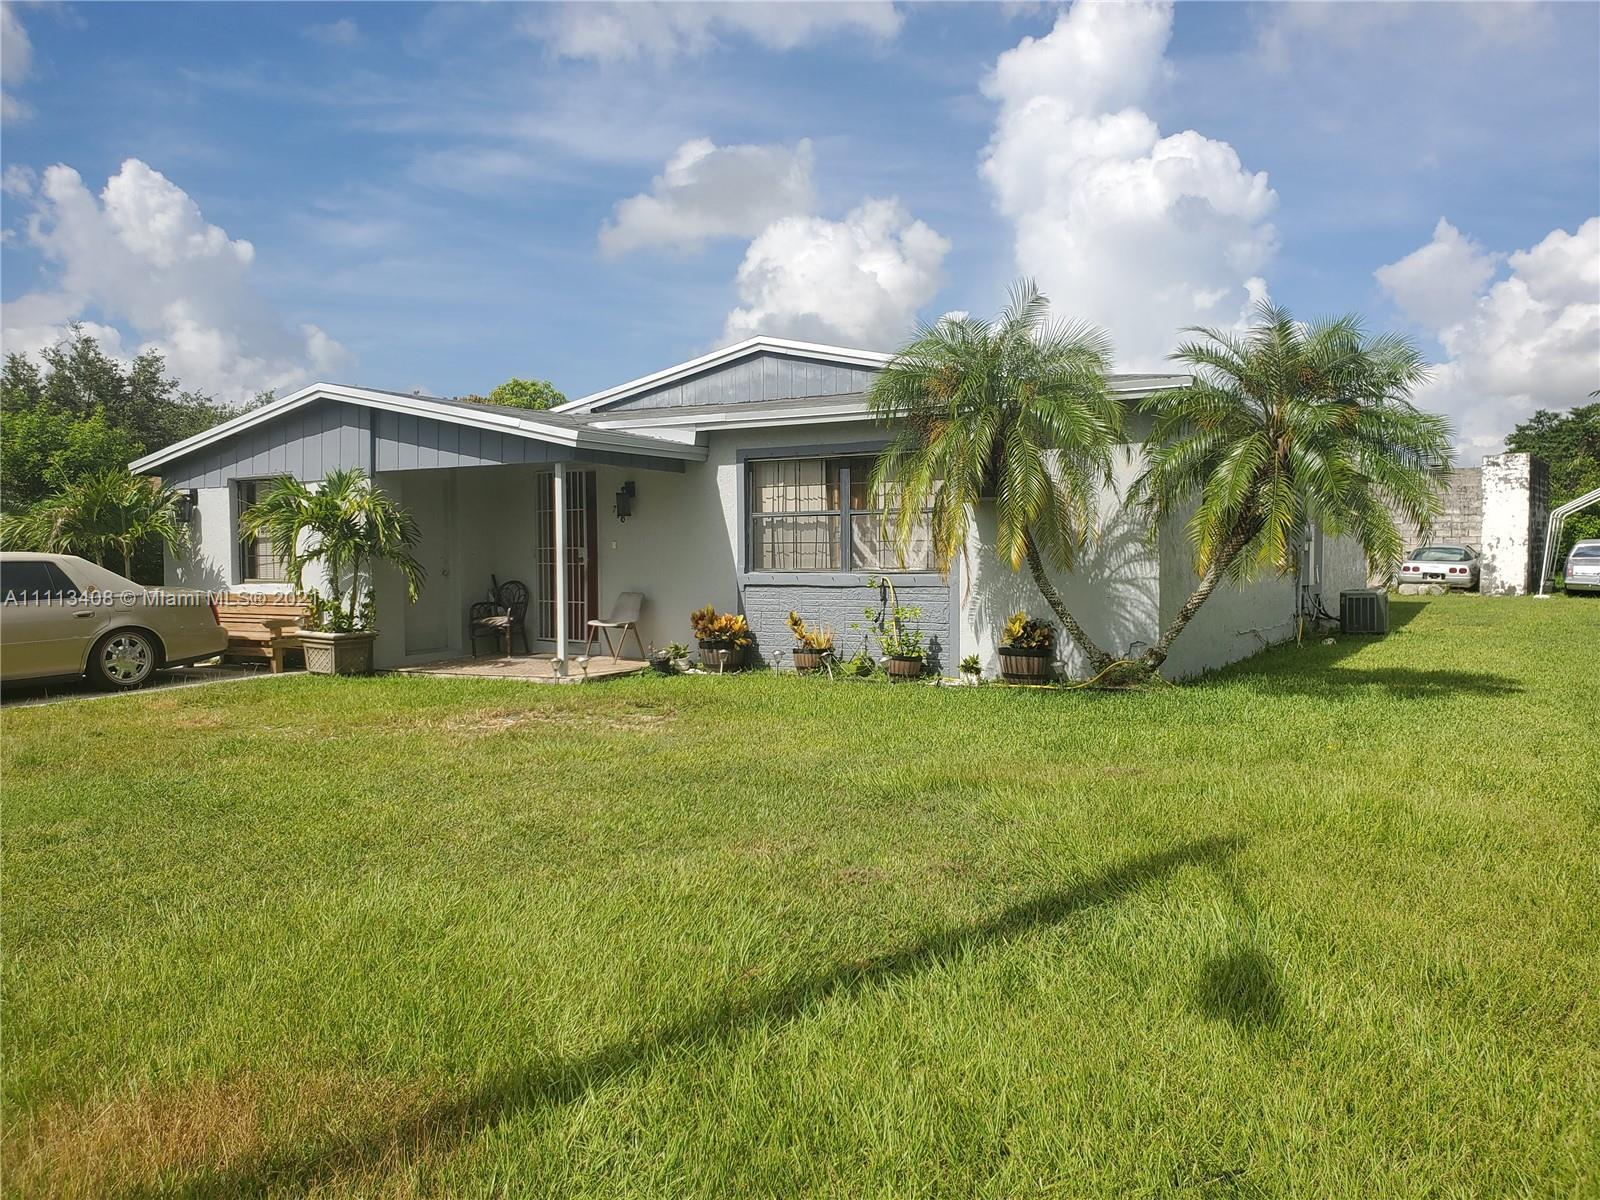 Single Family Home,For Sale,716 NW 7th Ct, Florida City, Florida 33034,Brickell,realty,broker,condos near me